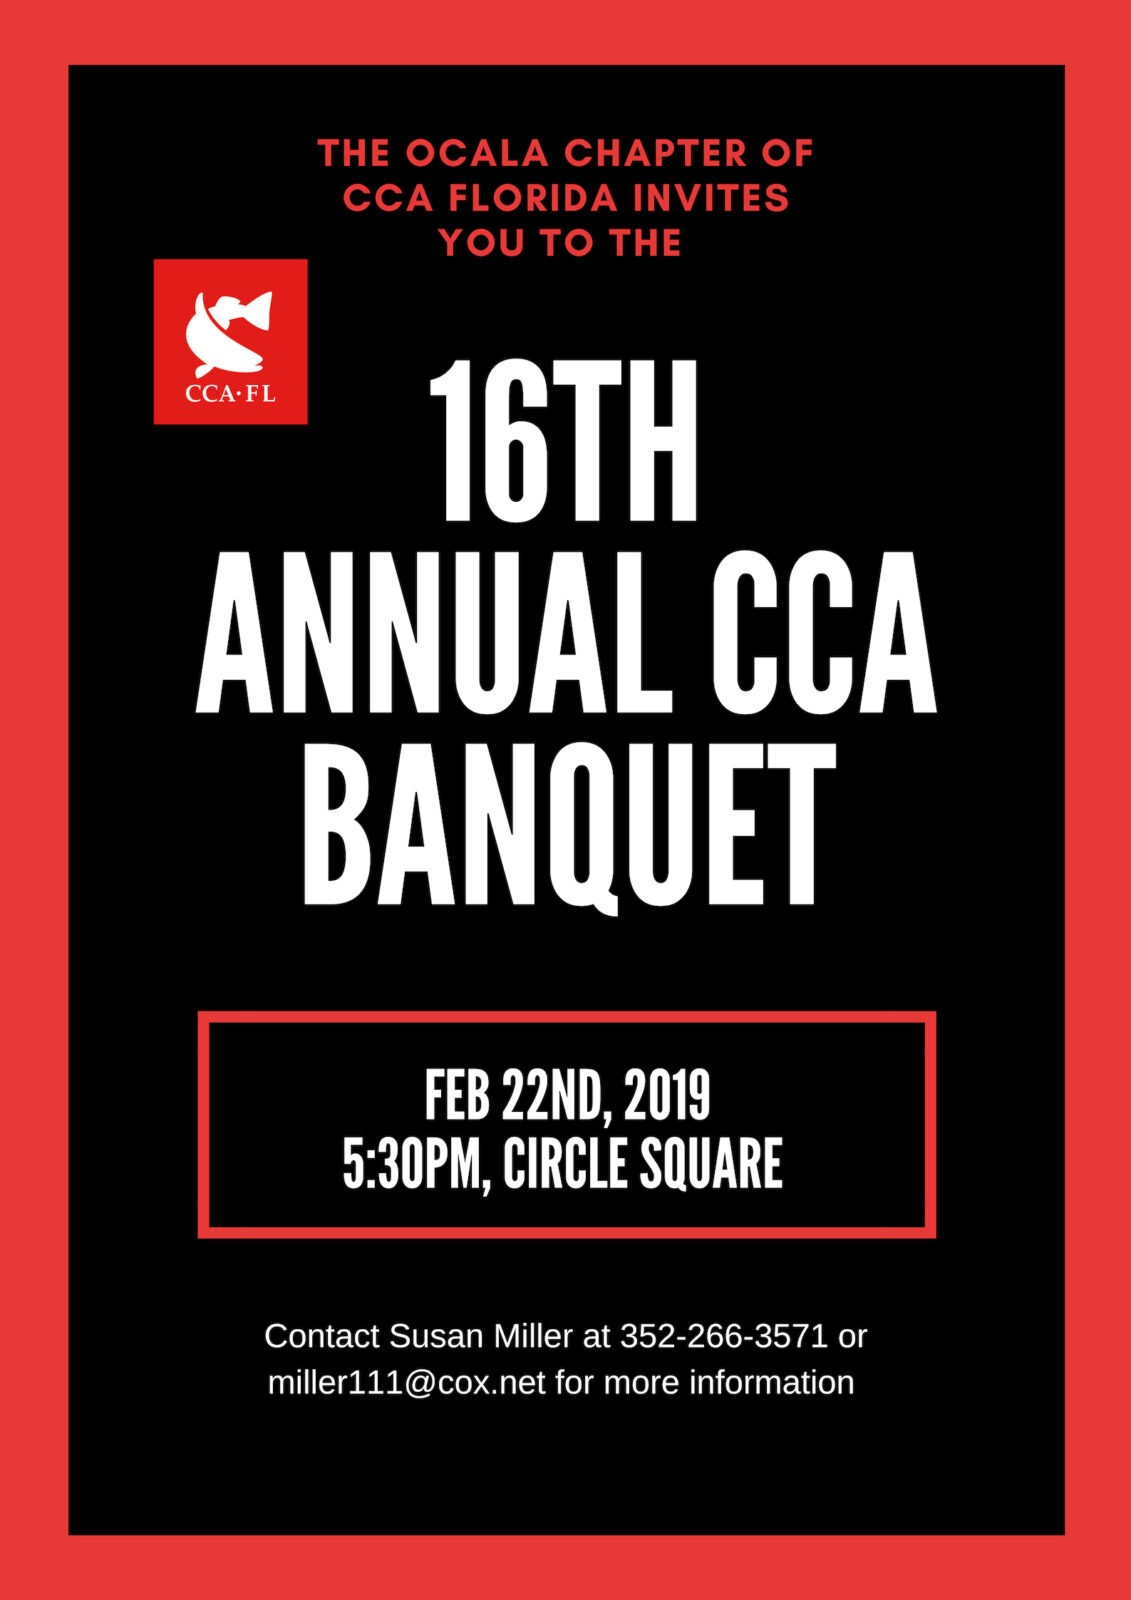 Ocala Chapter Banquet + Auction – CCA